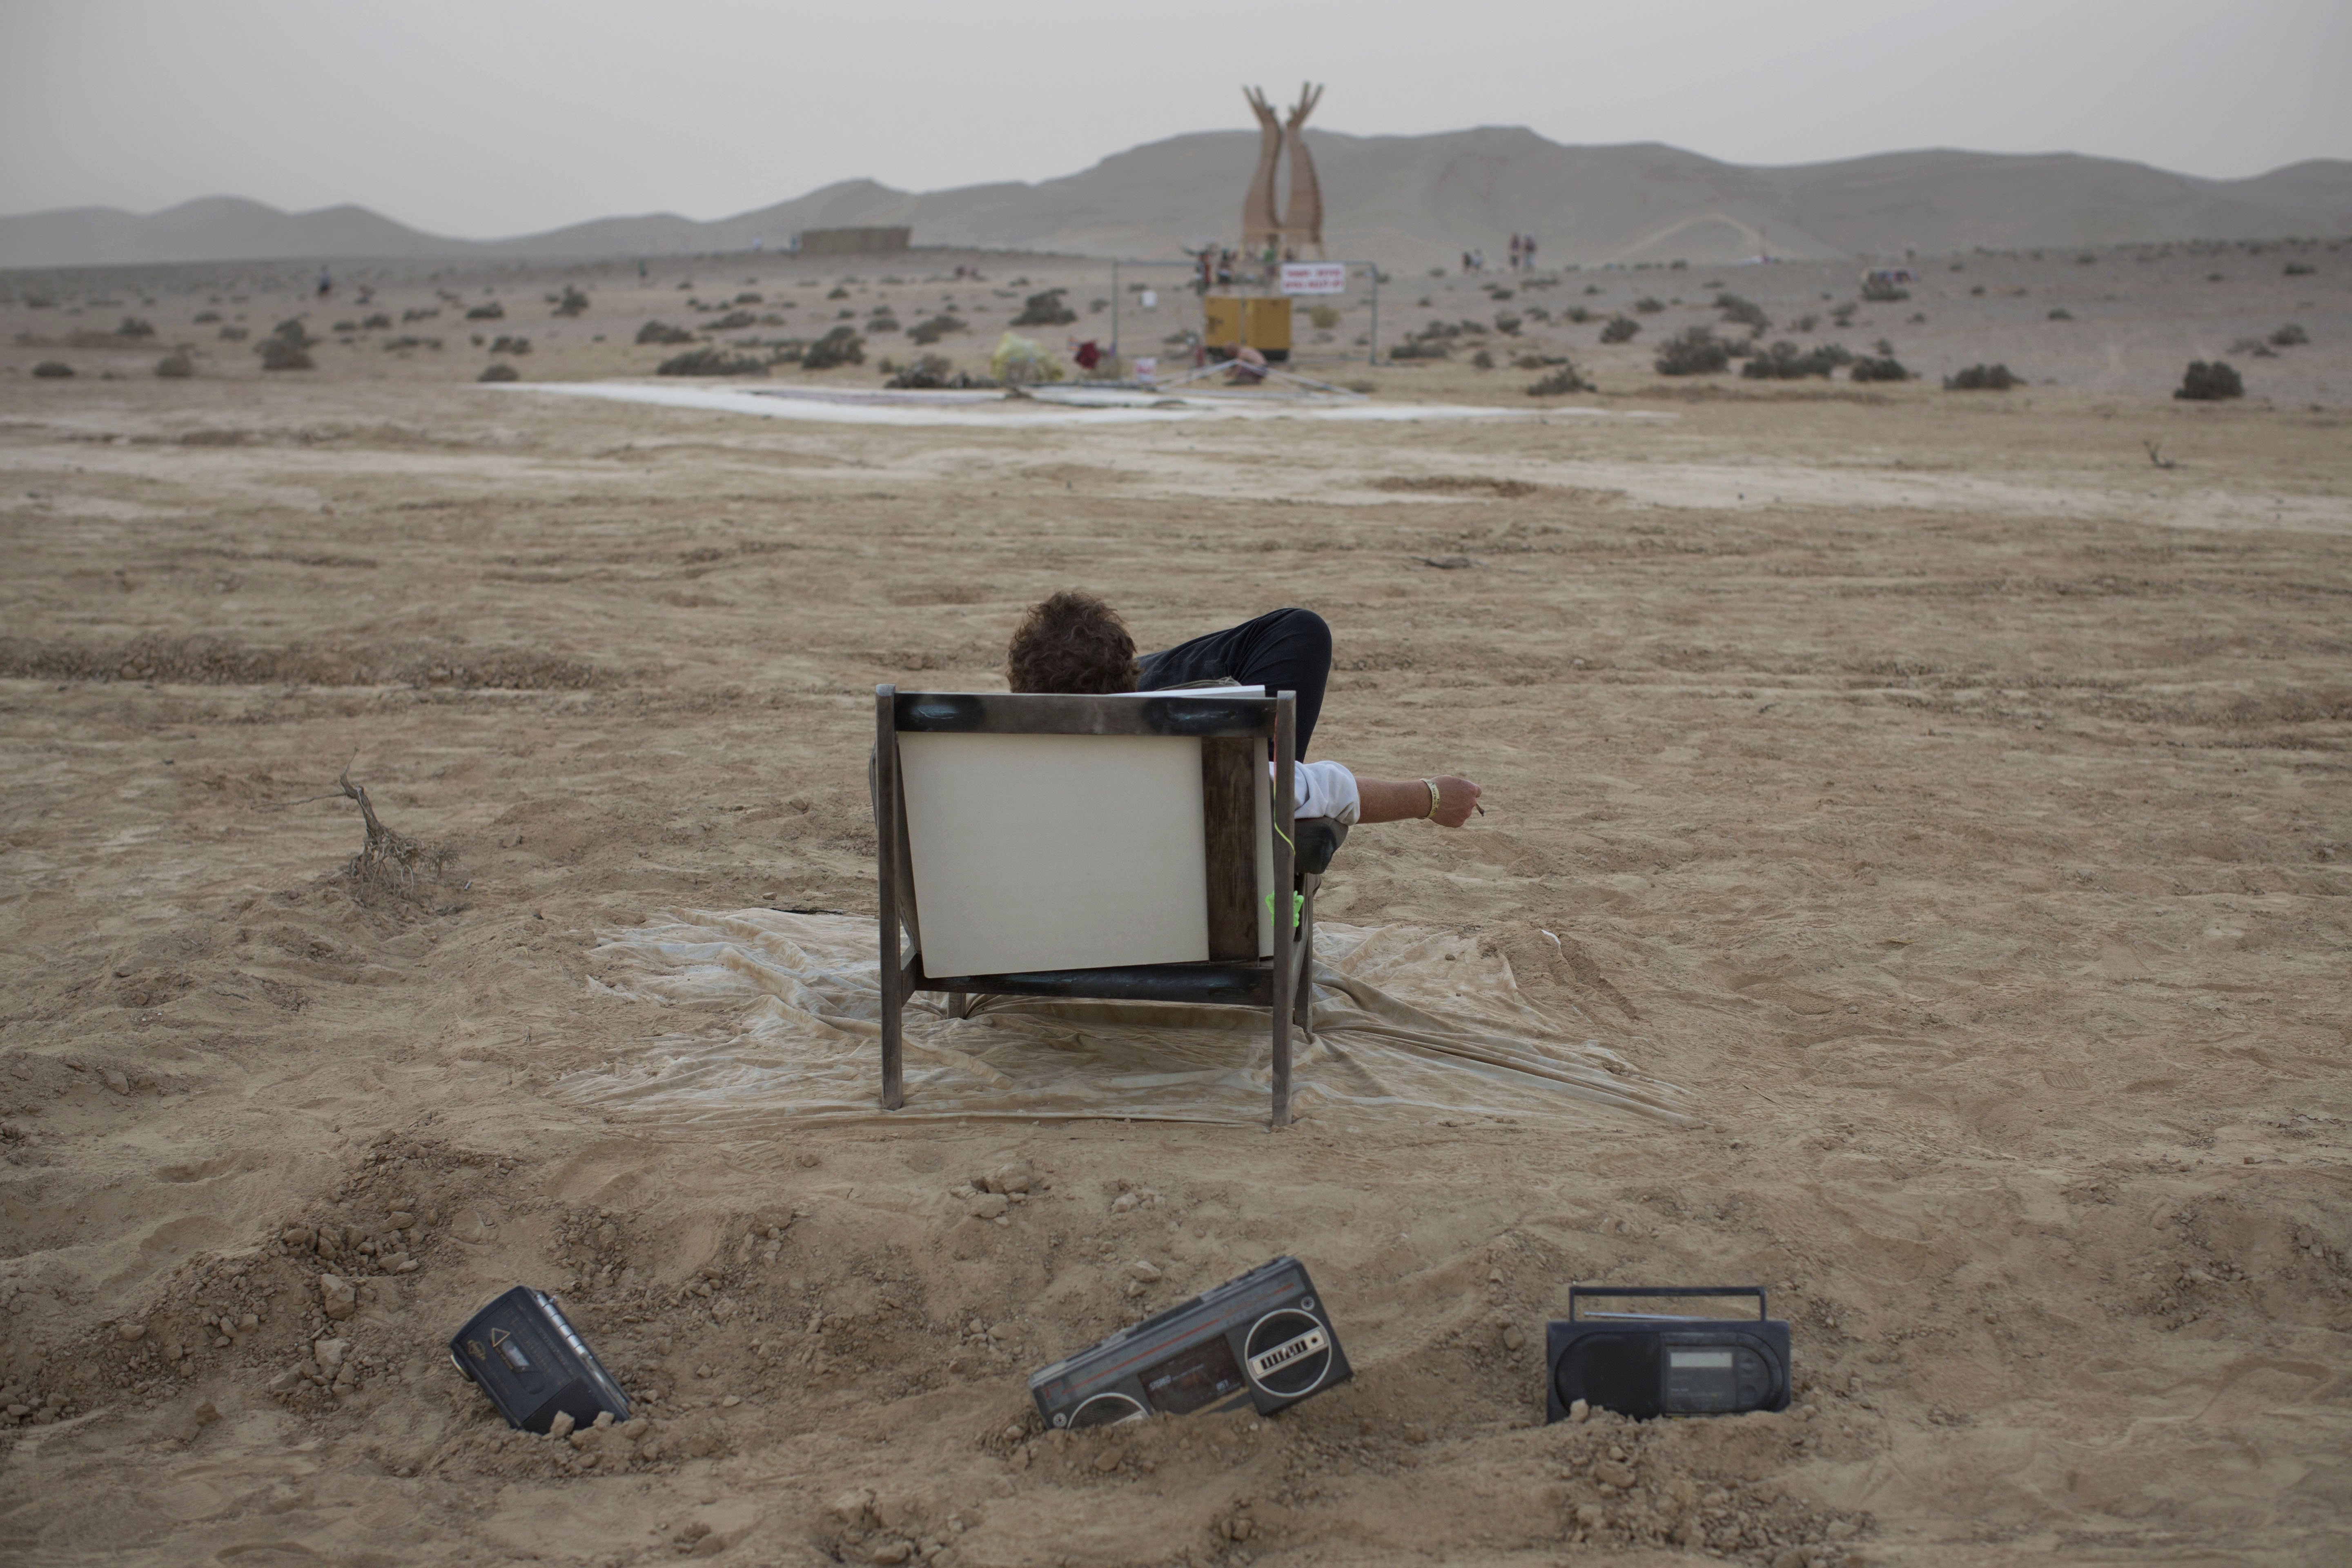 An Israeli man rests on a couch at Israel''s first Midburn festival in the Negev Desert, Israel on June 4, 2014.